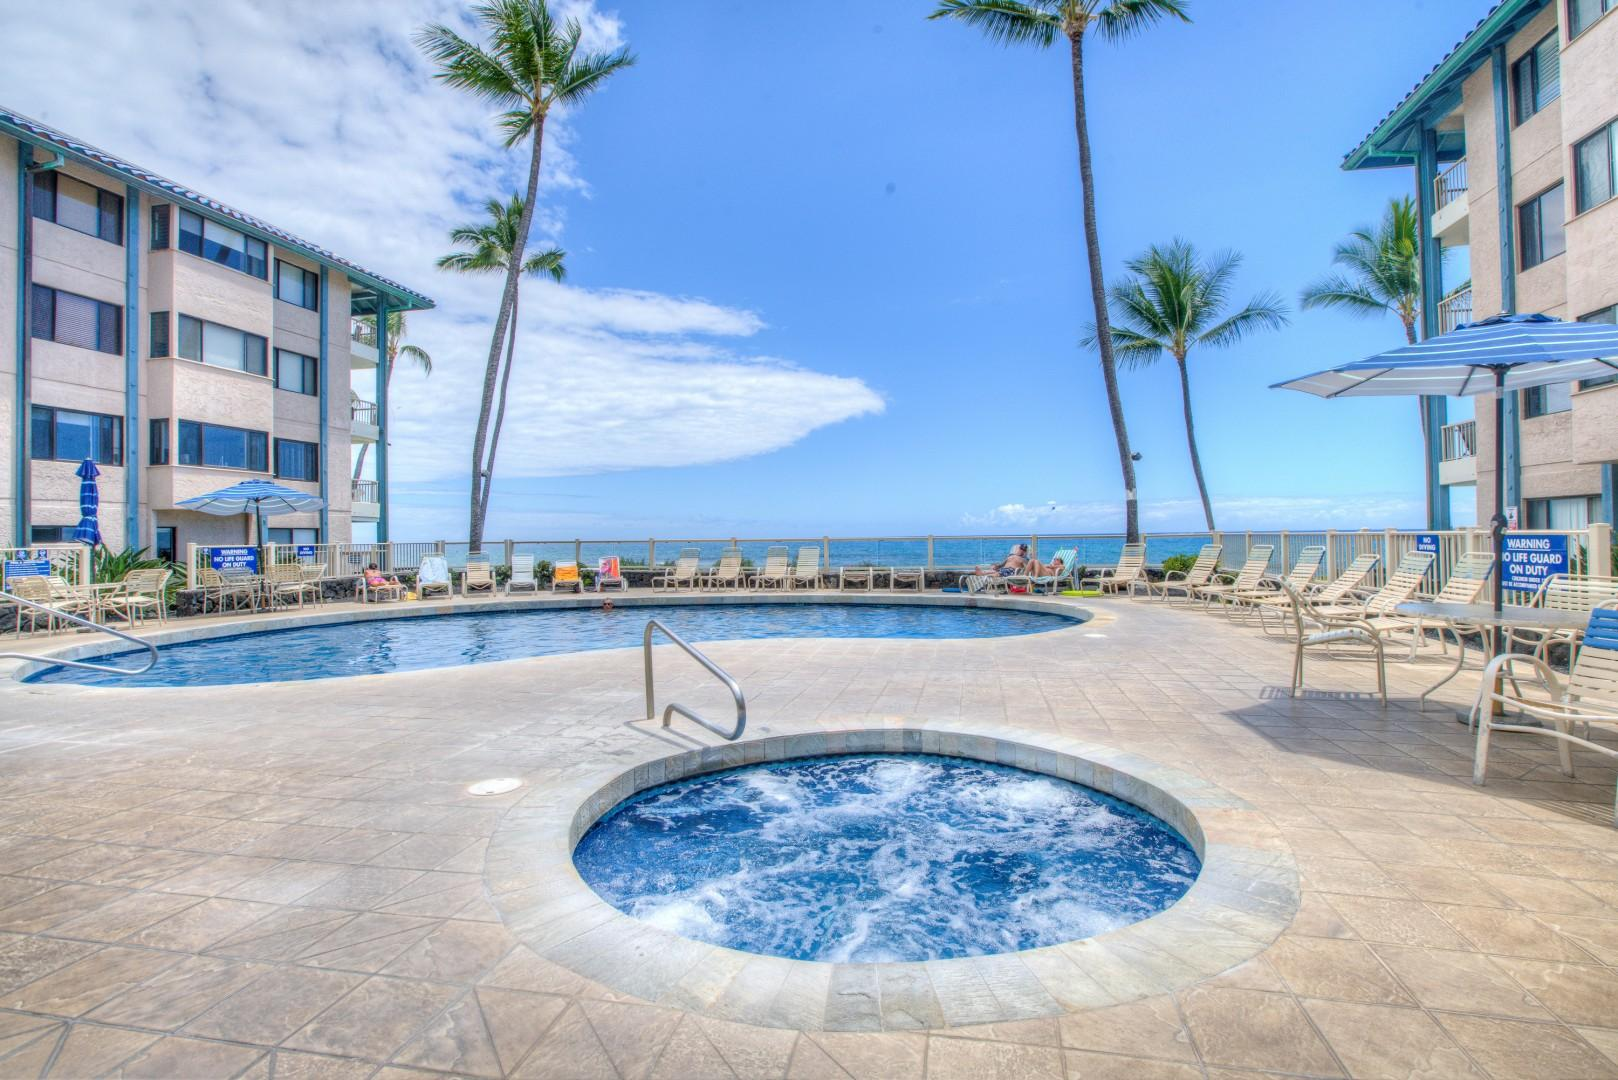 View of the Oceanfront Pool Area and Spa at the Kona Reef complex.